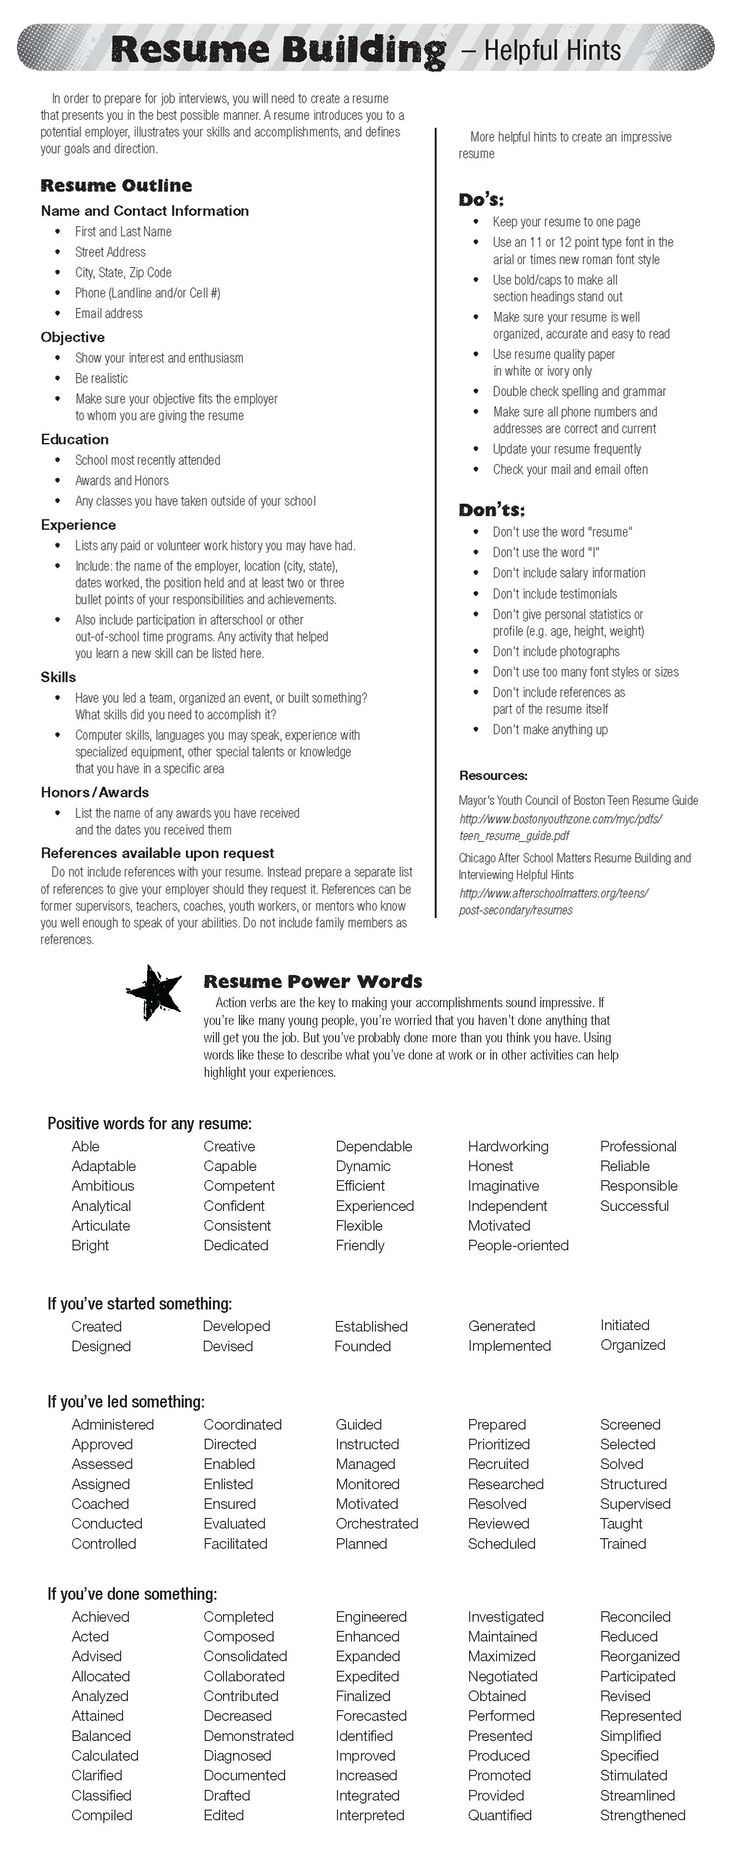 Opposenewapstandardsus  Wonderful  Ideas About Resume On Pinterest  Cv Format Resume Cv And  With Outstanding  Ideas About Resume On Pinterest  Cv Format Resume Cv And Resume Templates With Cute Cover Letters For A Resume Also Cell Phone Sales Resume In Addition How To Write A One Page Resume And Dental Assistant Skills For Resume As Well As Sample Resume Cashier Additionally Digital Marketing Resume Sample From Pinterestcom With Opposenewapstandardsus  Outstanding  Ideas About Resume On Pinterest  Cv Format Resume Cv And  With Cute  Ideas About Resume On Pinterest  Cv Format Resume Cv And Resume Templates And Wonderful Cover Letters For A Resume Also Cell Phone Sales Resume In Addition How To Write A One Page Resume From Pinterestcom